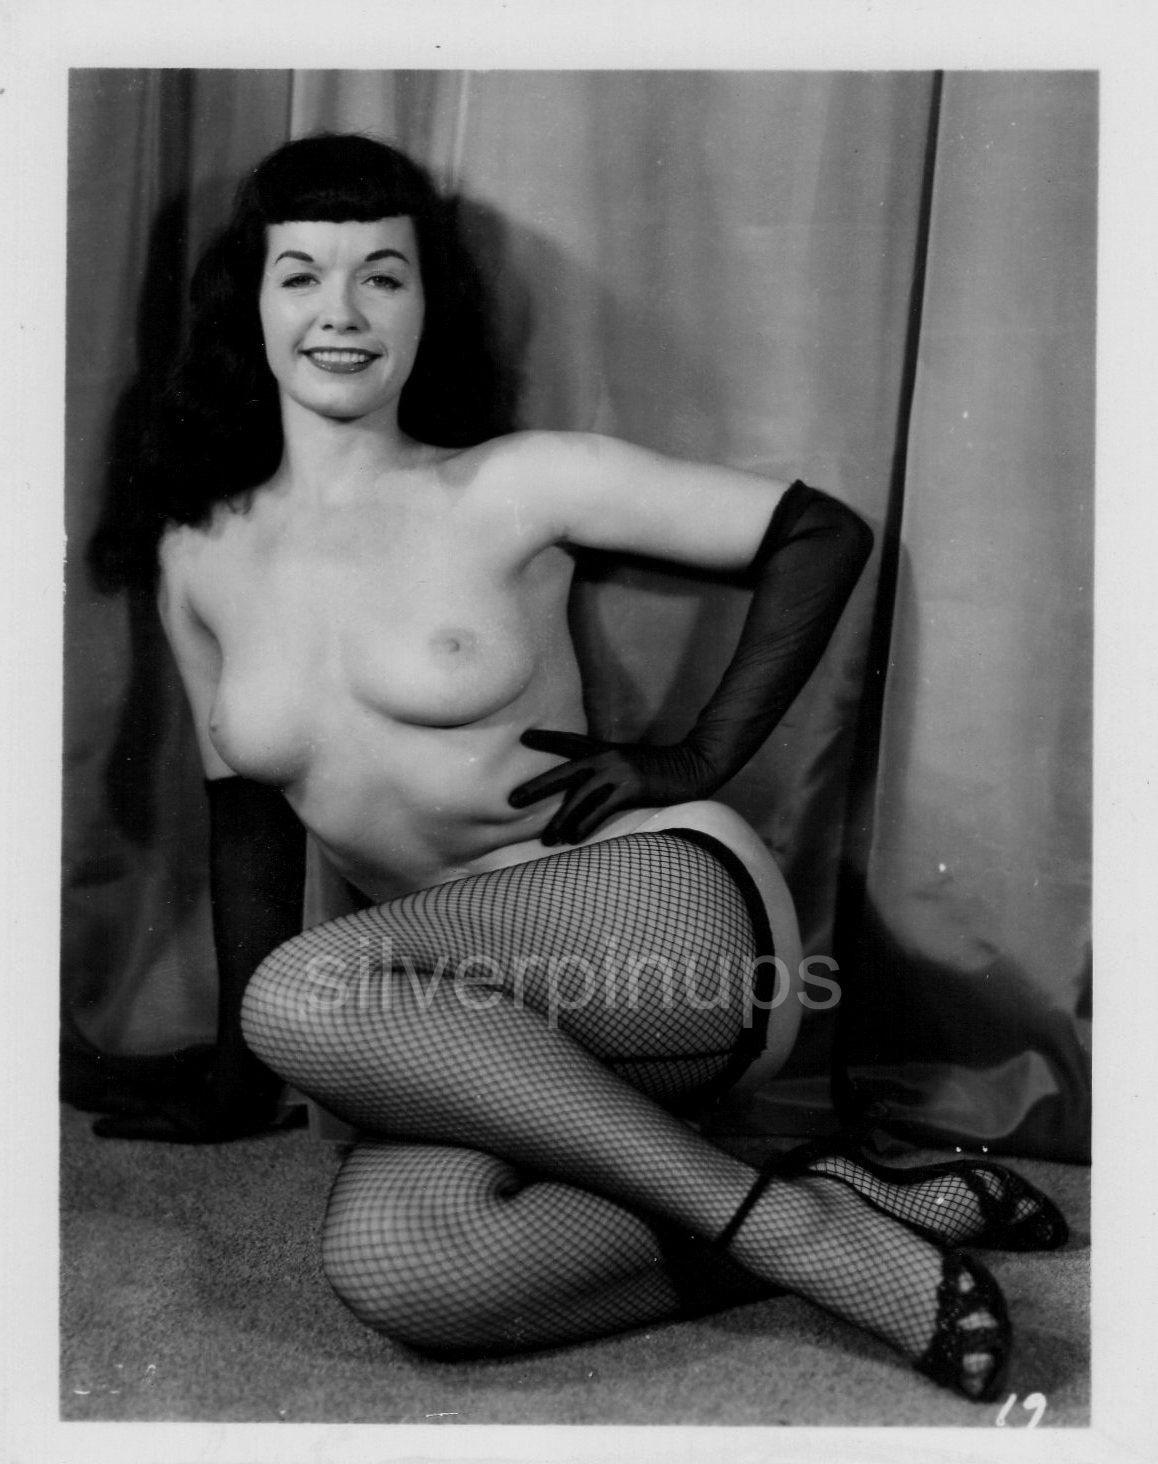 dildo-her-bettie-page-nude-images-nipples